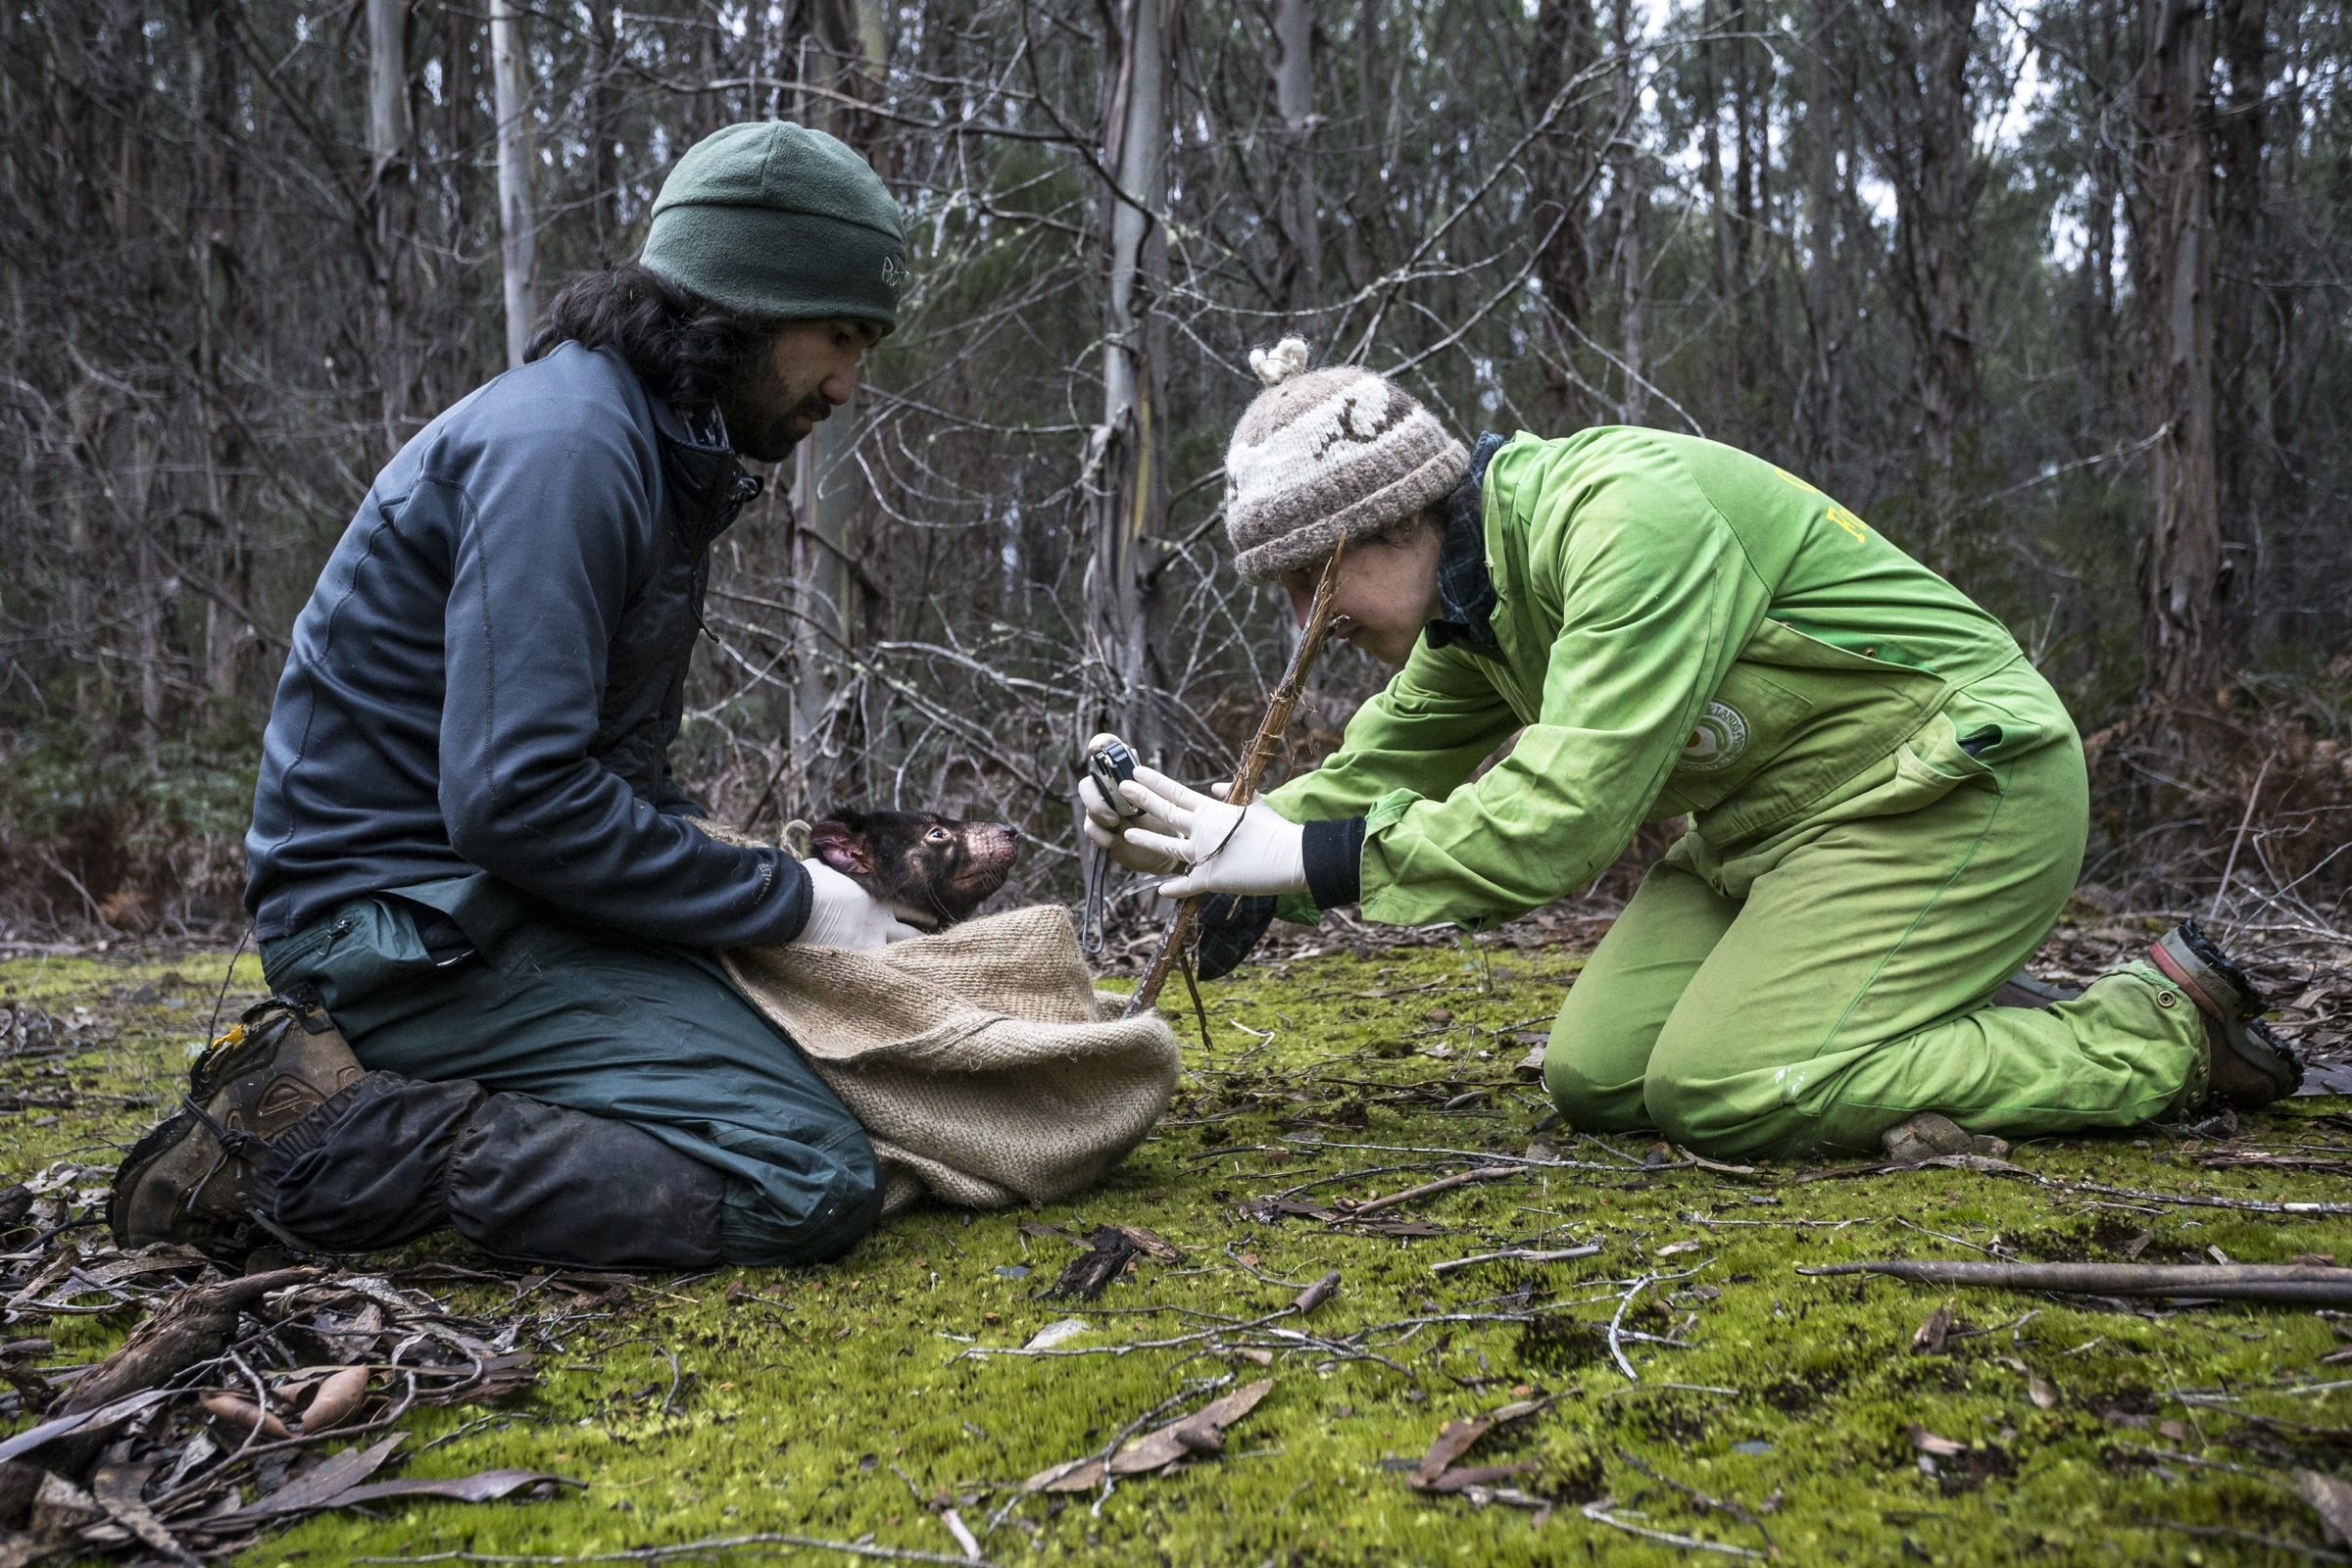 Wildlife veterinarian Manuel Ruiz and volunteer Christine Weldrick take photographs of a Tasmanian devil with facial tumors in order to track the disease's progression. If the team is able to recapture the same individual in the future, they will refer to photos like these to assess how the tumors have changed over time.